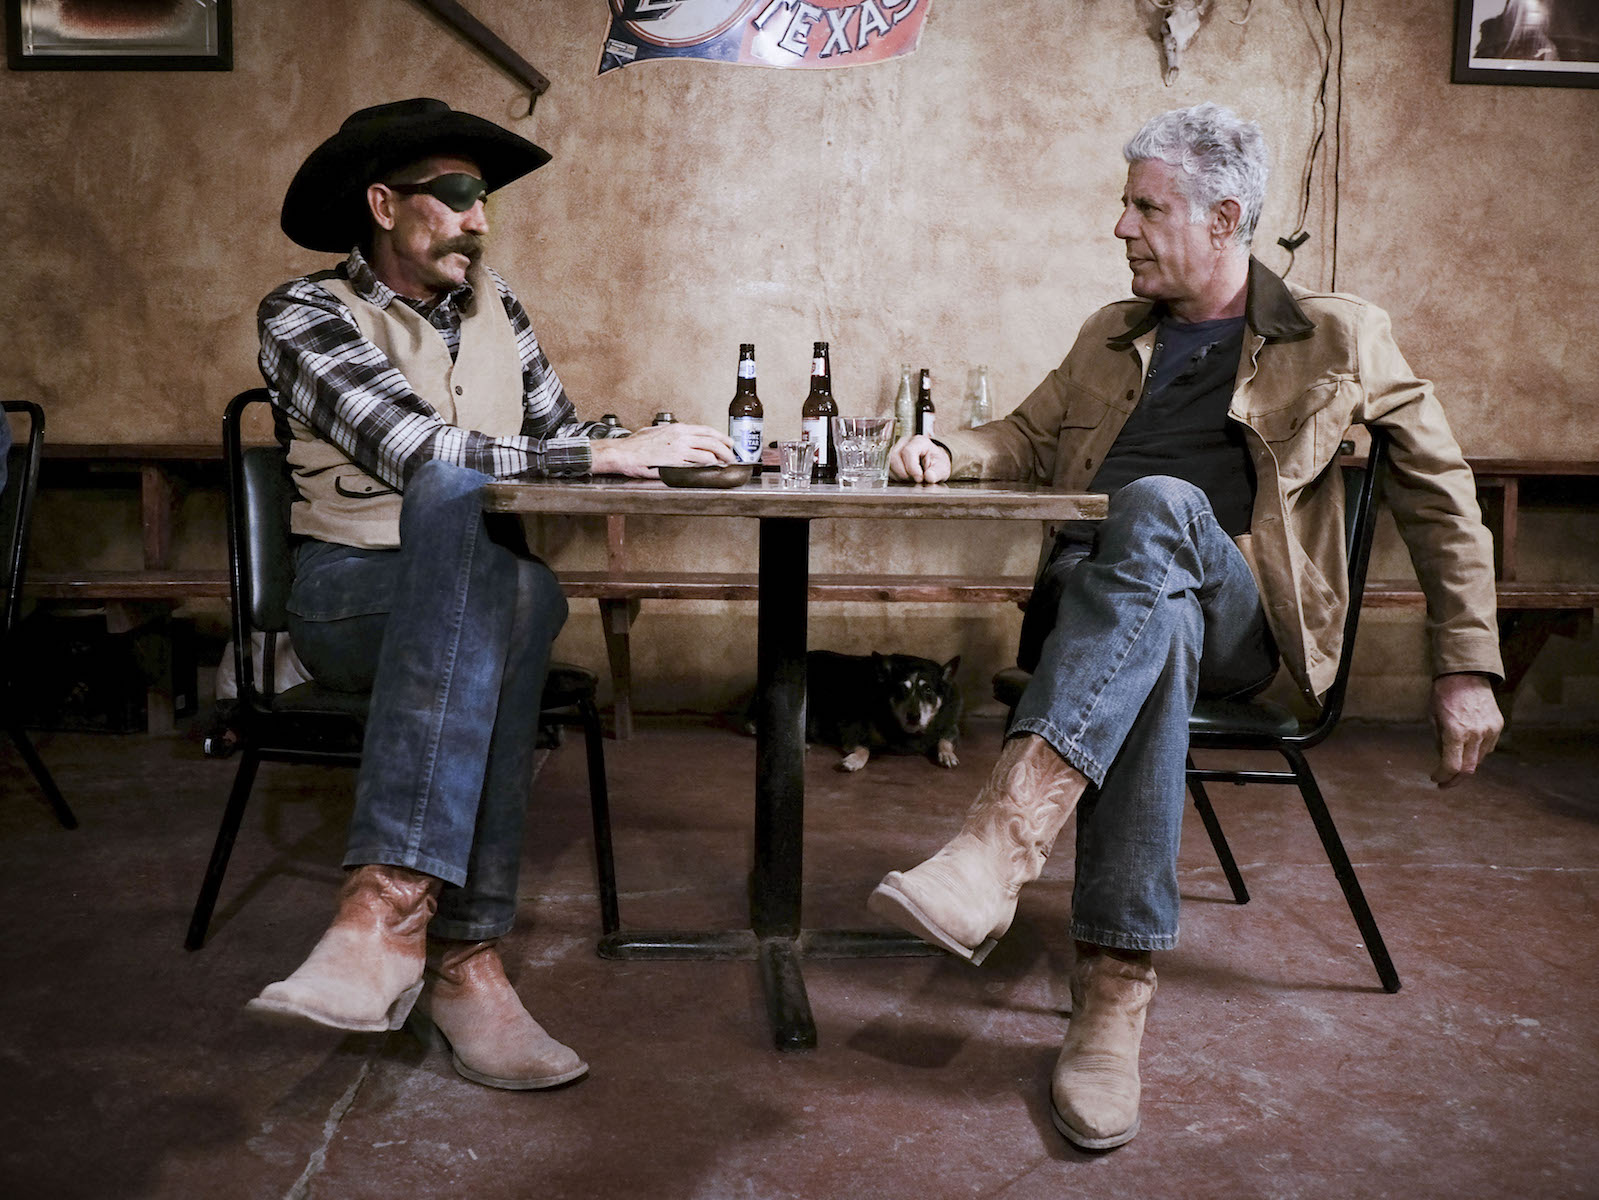 bourdain-parts-unkown-west-texas-FT-BLOG1018.jpg